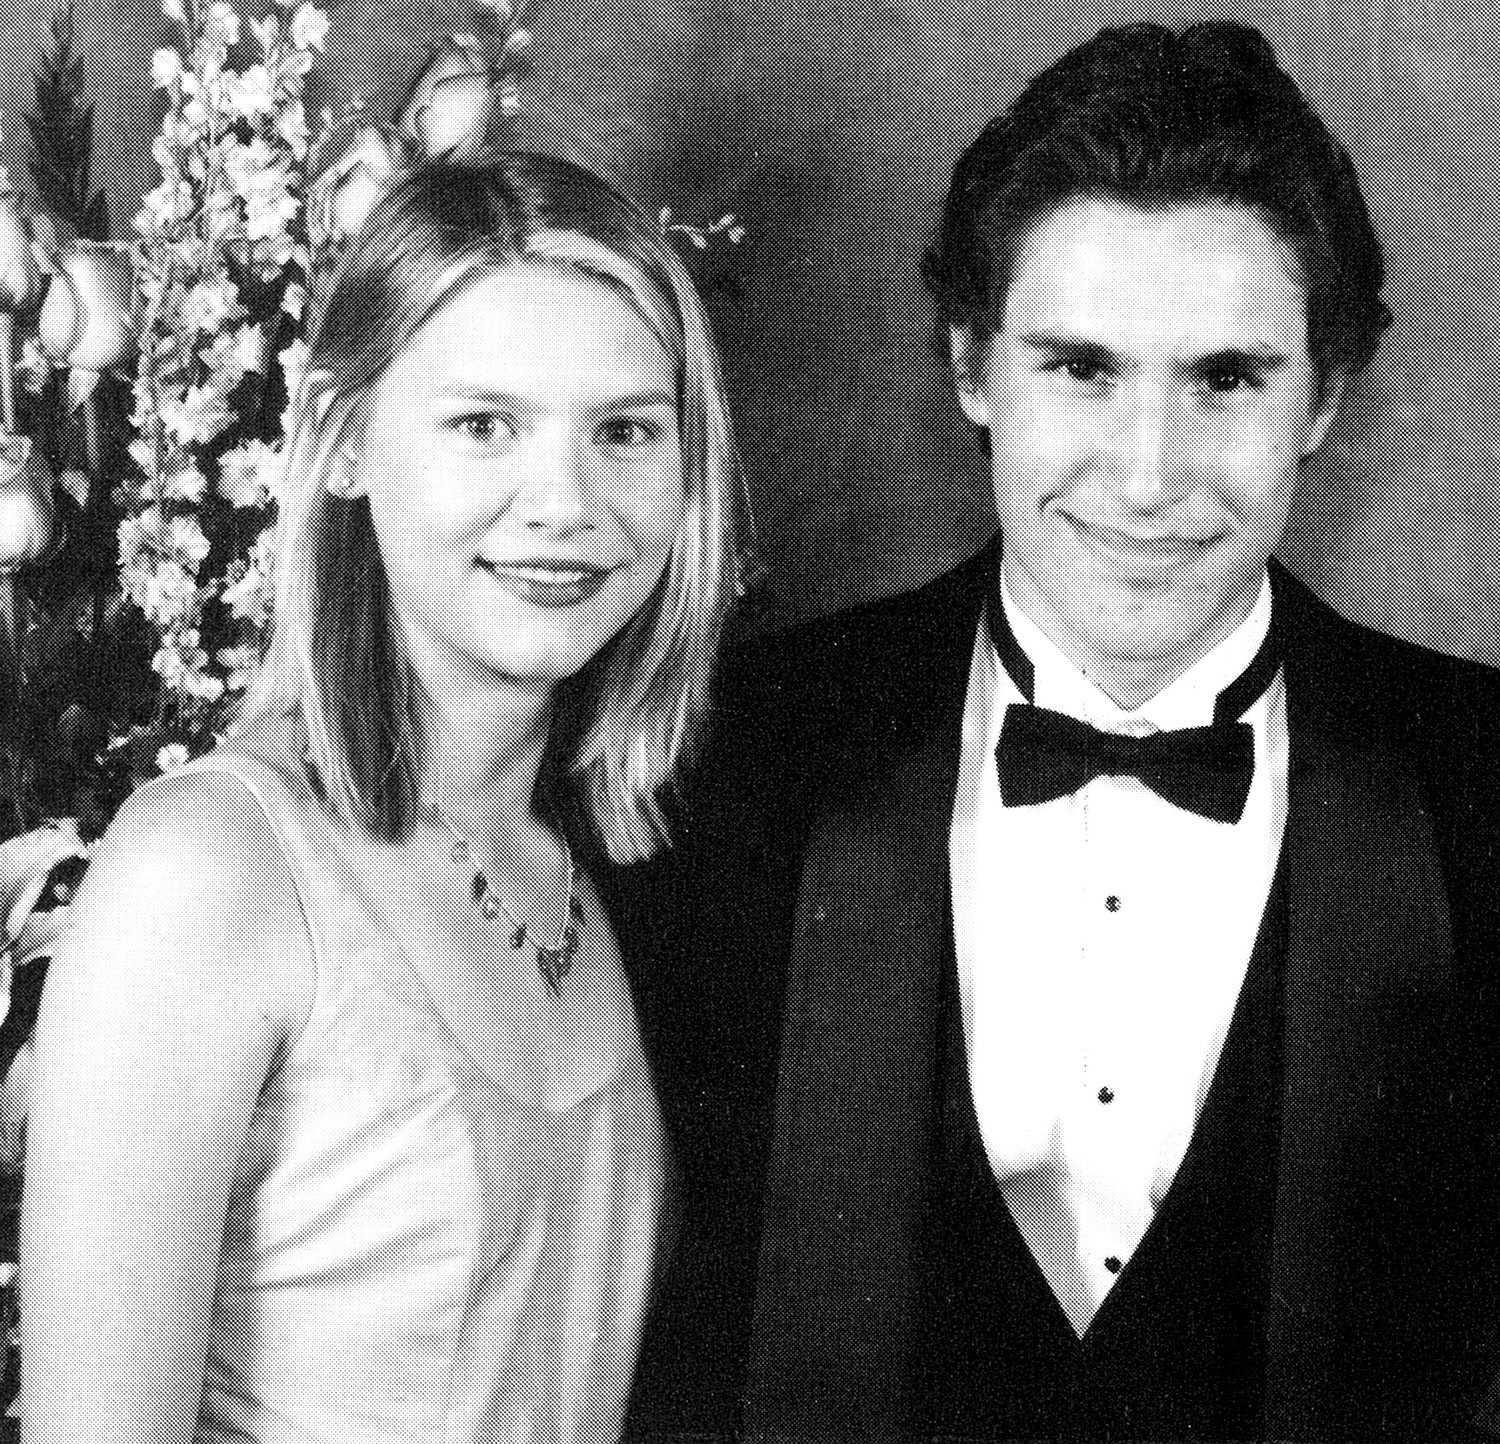 Although she mastered teen angst for My So-Called Life, the actress was all smiles in 1997 at her real-life high school prom in Los Angeles.